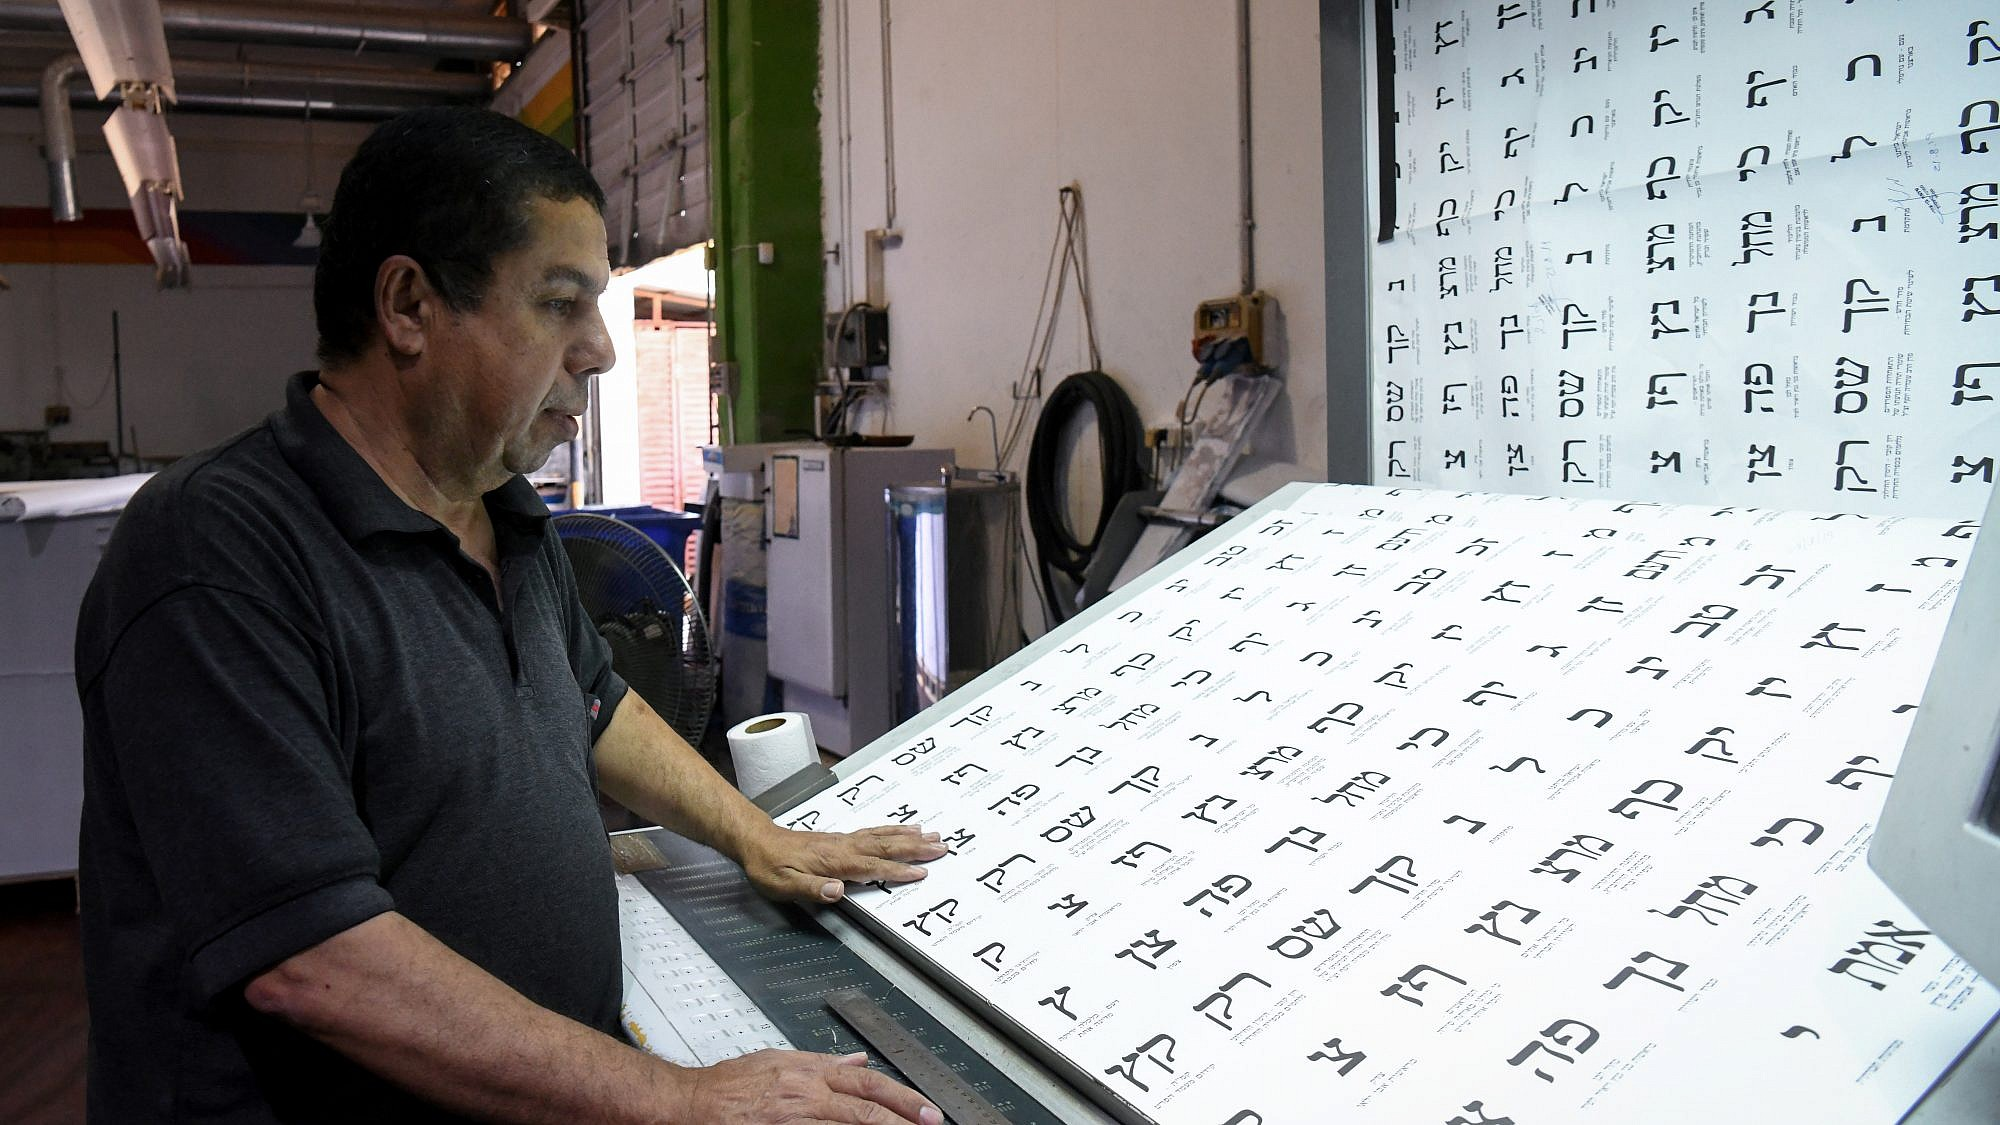 Sheets of newly printed ballots seen at Palphot printing house in Karnei Shomron in preparation for Israel's upcoming general elections, Aug. 28, 2019. Photo by Flash90.